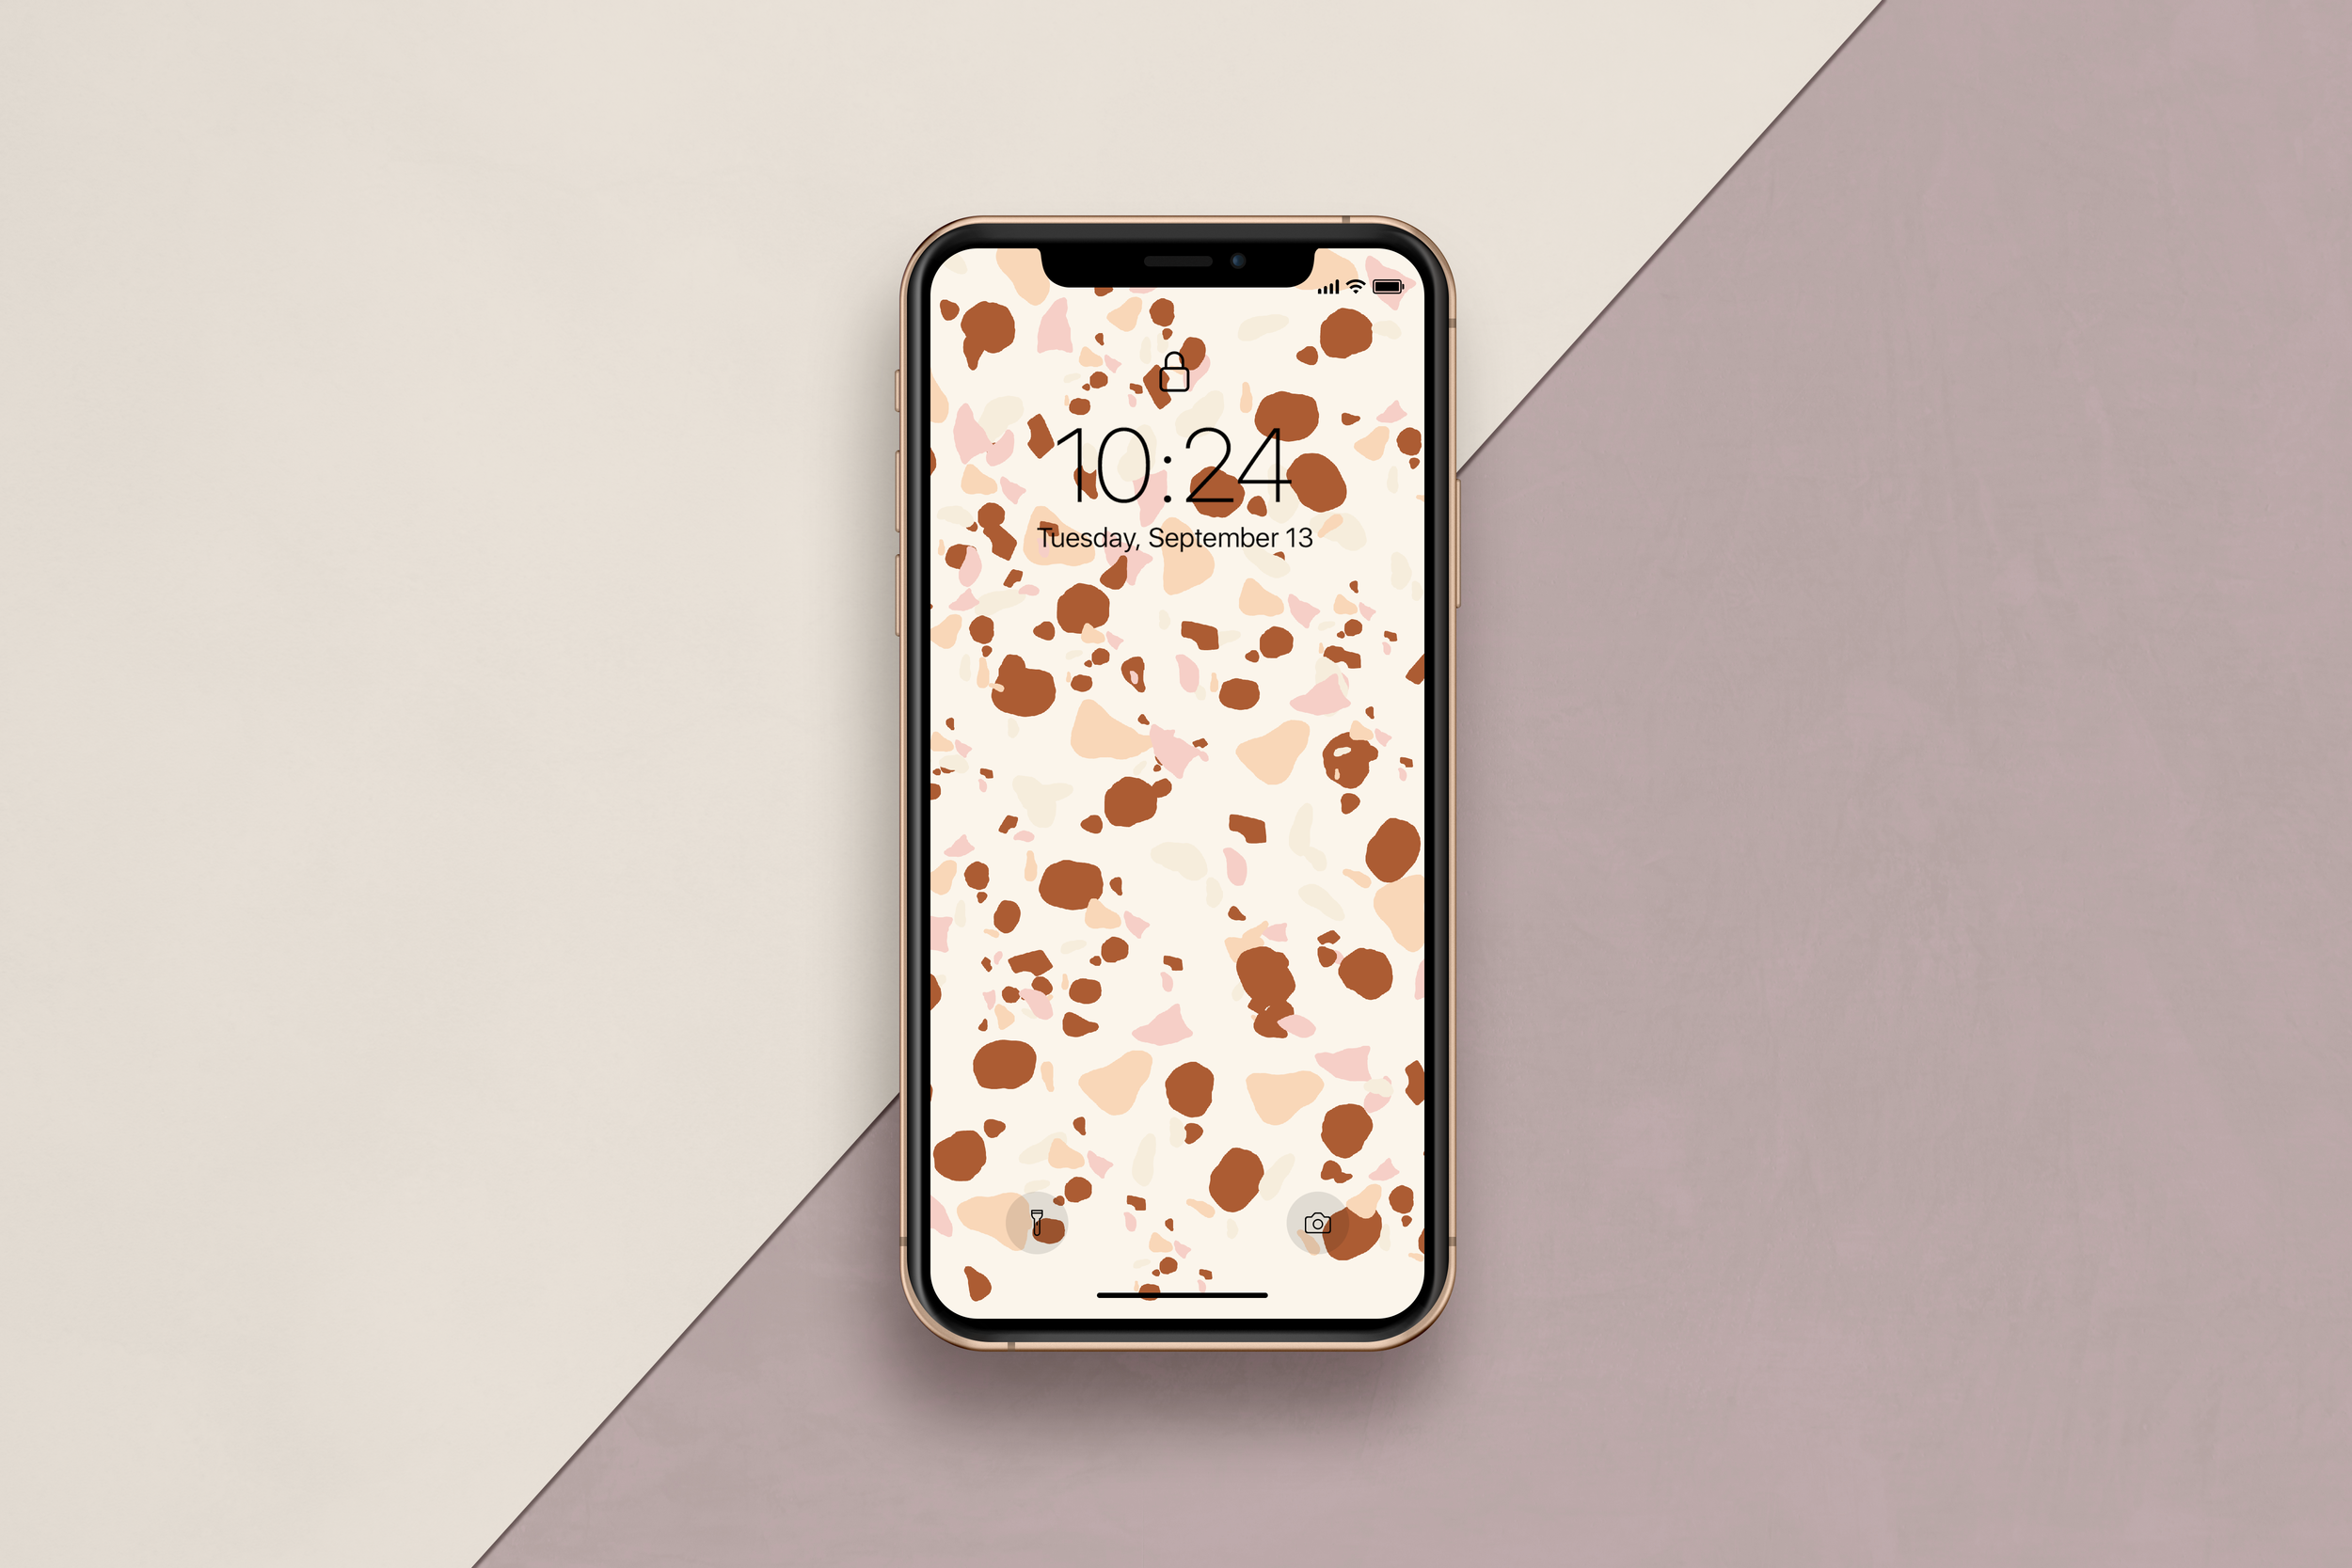 Phone with terrazzo wallpaper.